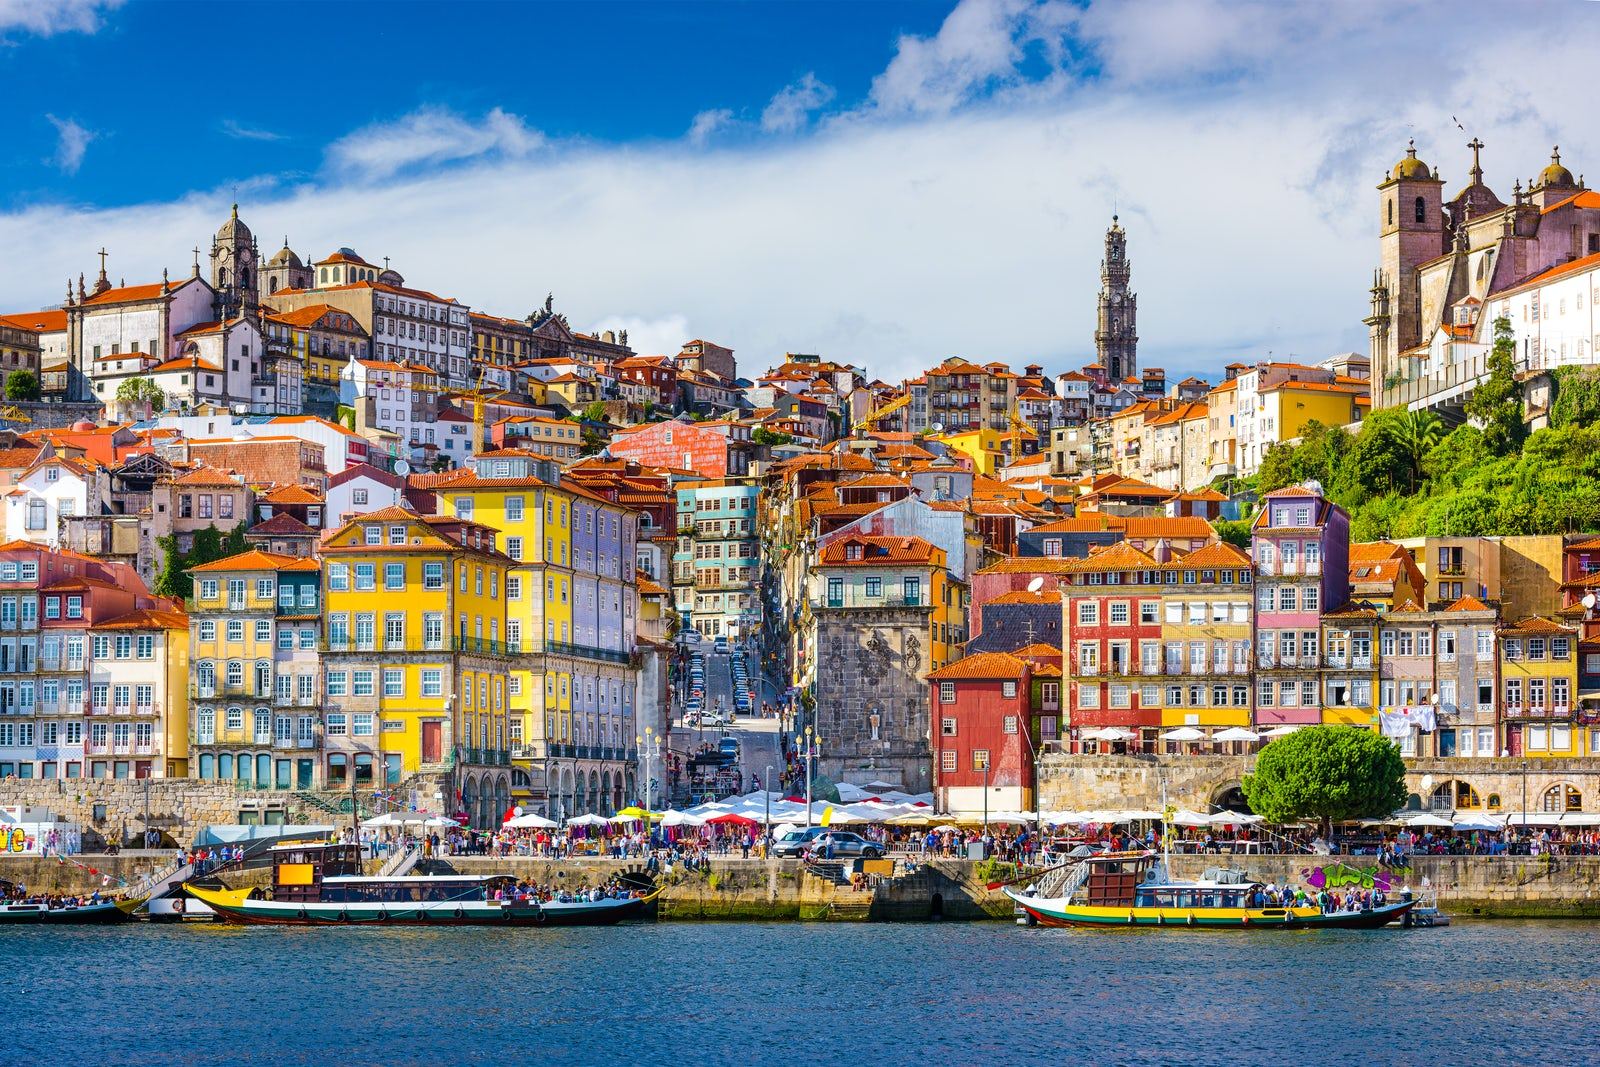 !i18n:fr:data.cities:porto.picture.caption